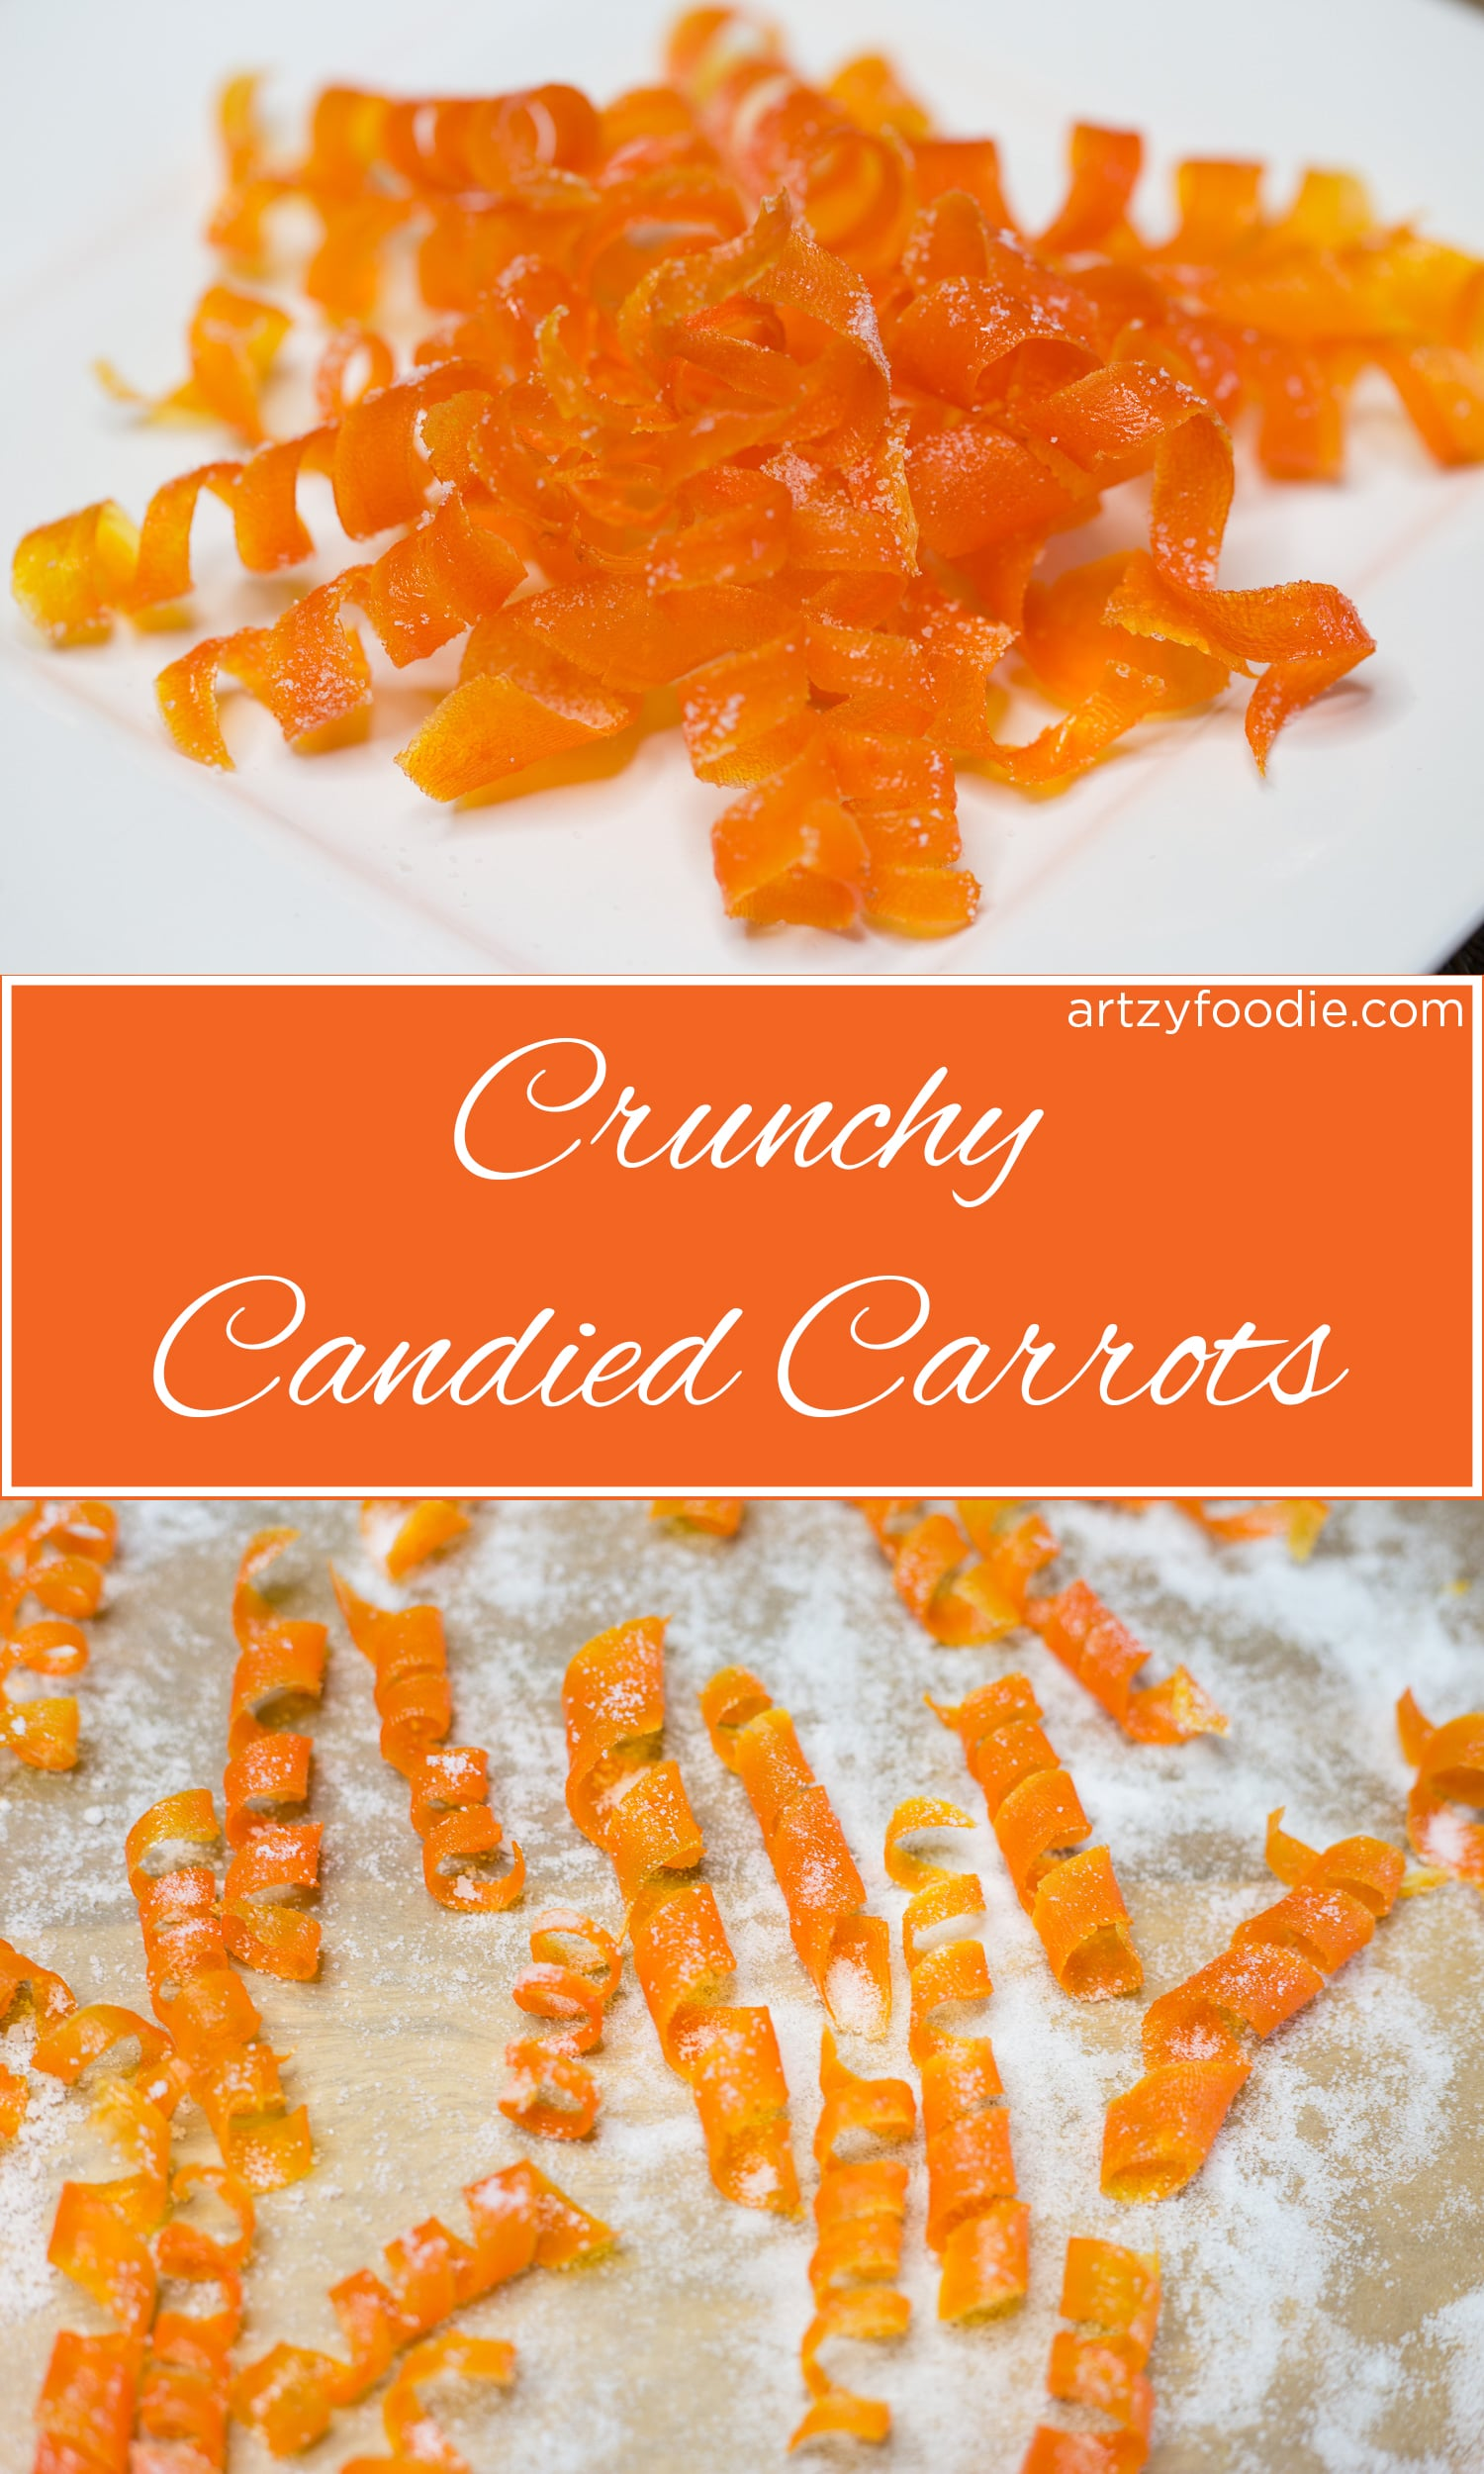 Candied carrots are as much fun to make as they are to eat! These super cute candied carrot curls have been boiled in sugar water, baked, and dusted with even more sugar! |artzyfoodie.com|